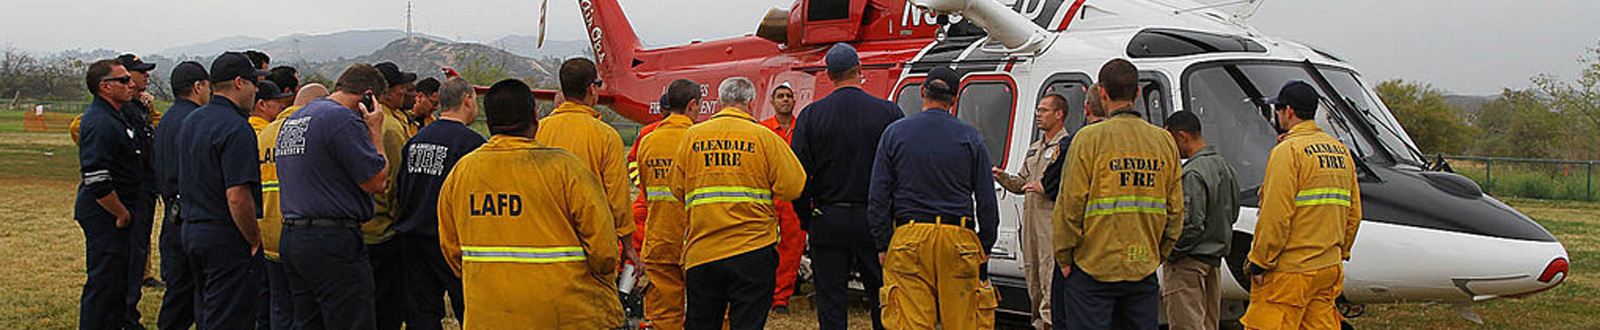 LAFD team meeting beside a helicopter